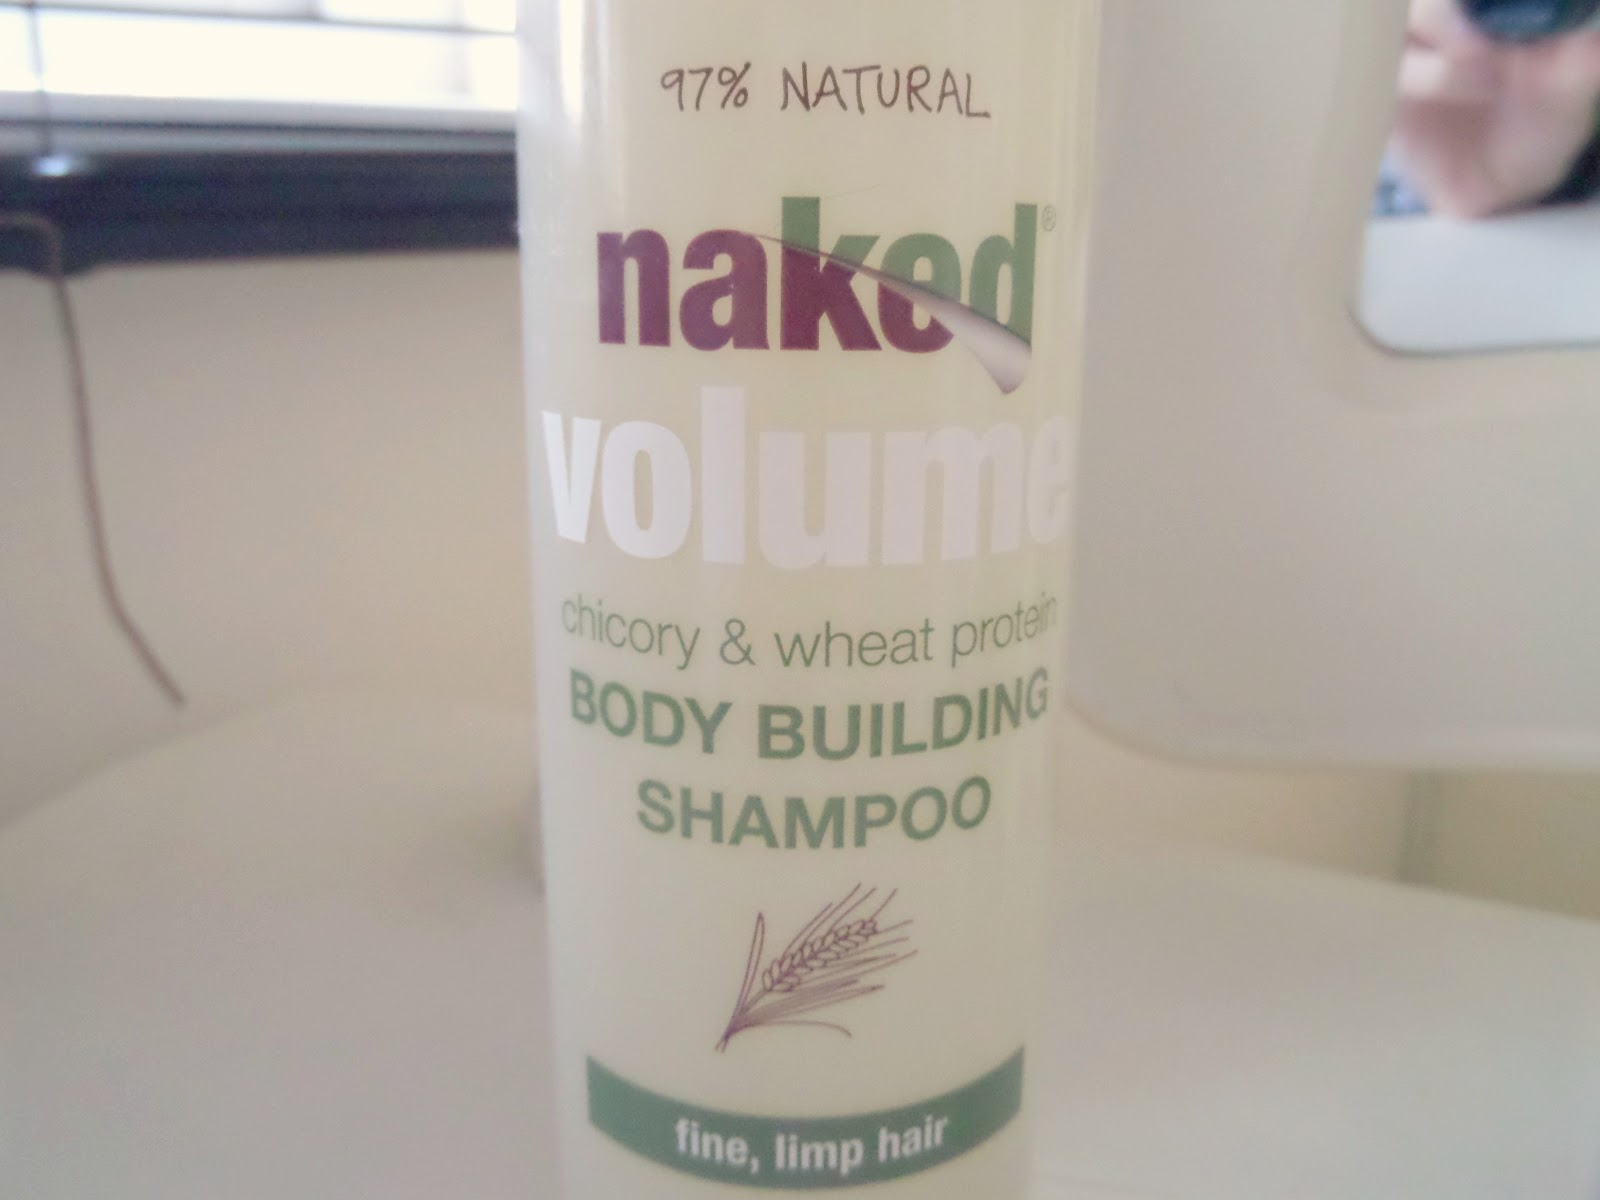 Naked Volume Body Building Shampoo